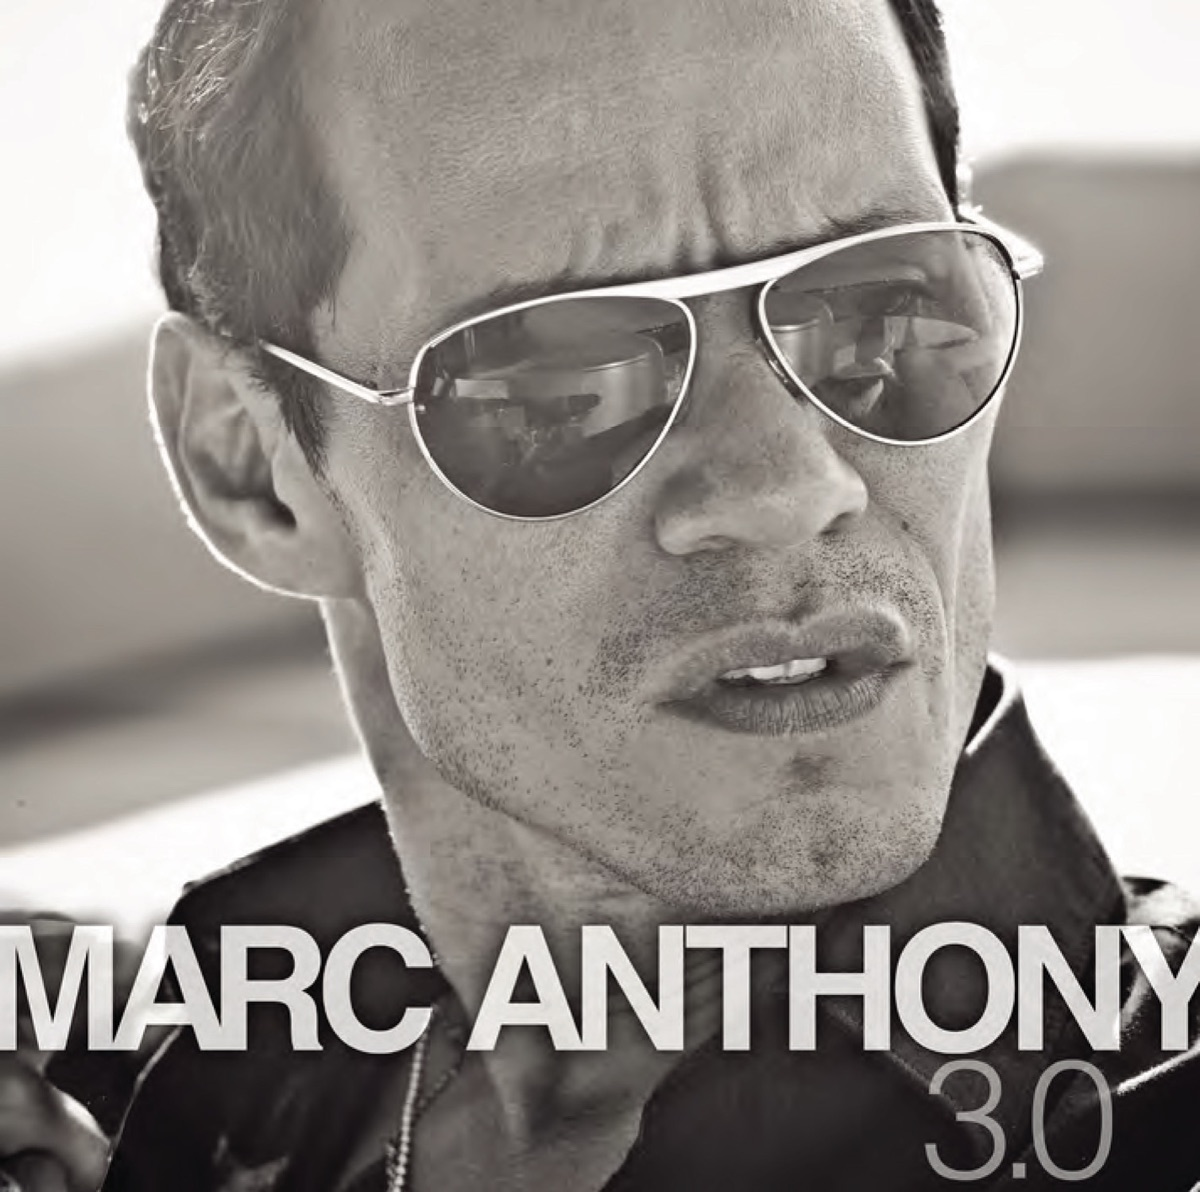 30 Marc Anthony CD cover